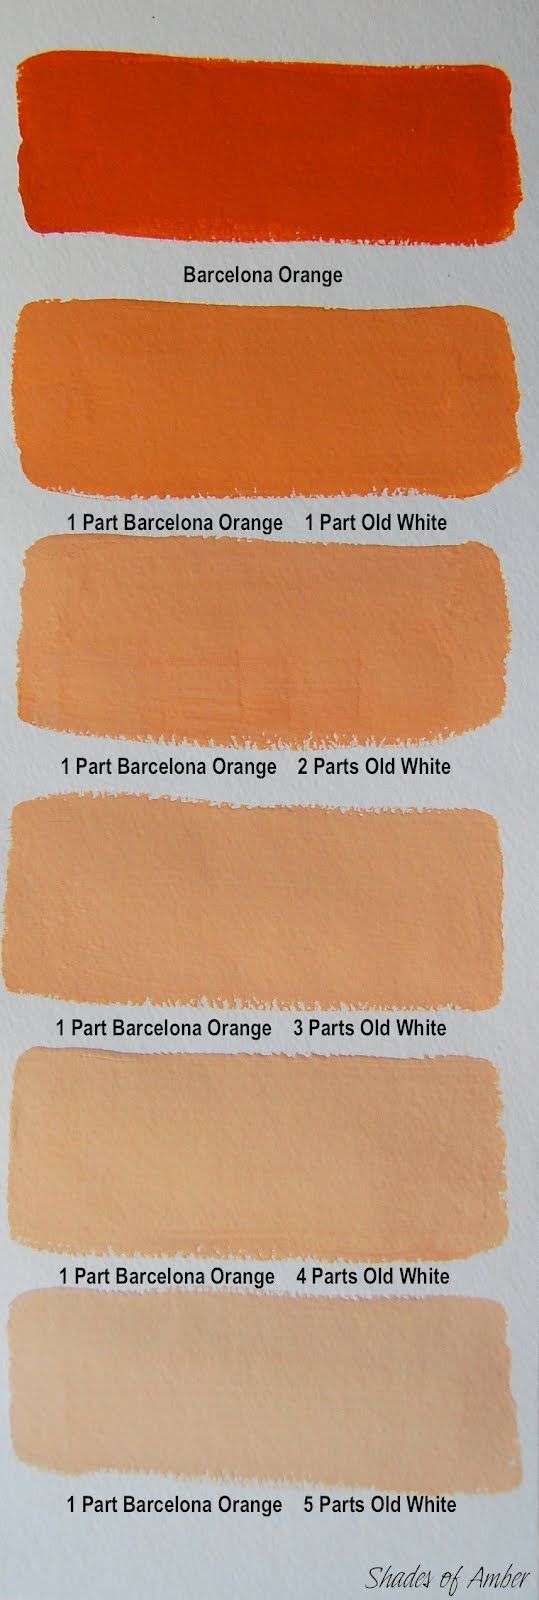 Shades Of Amber: Chalk Paint Color Theory   Barcelona Orange